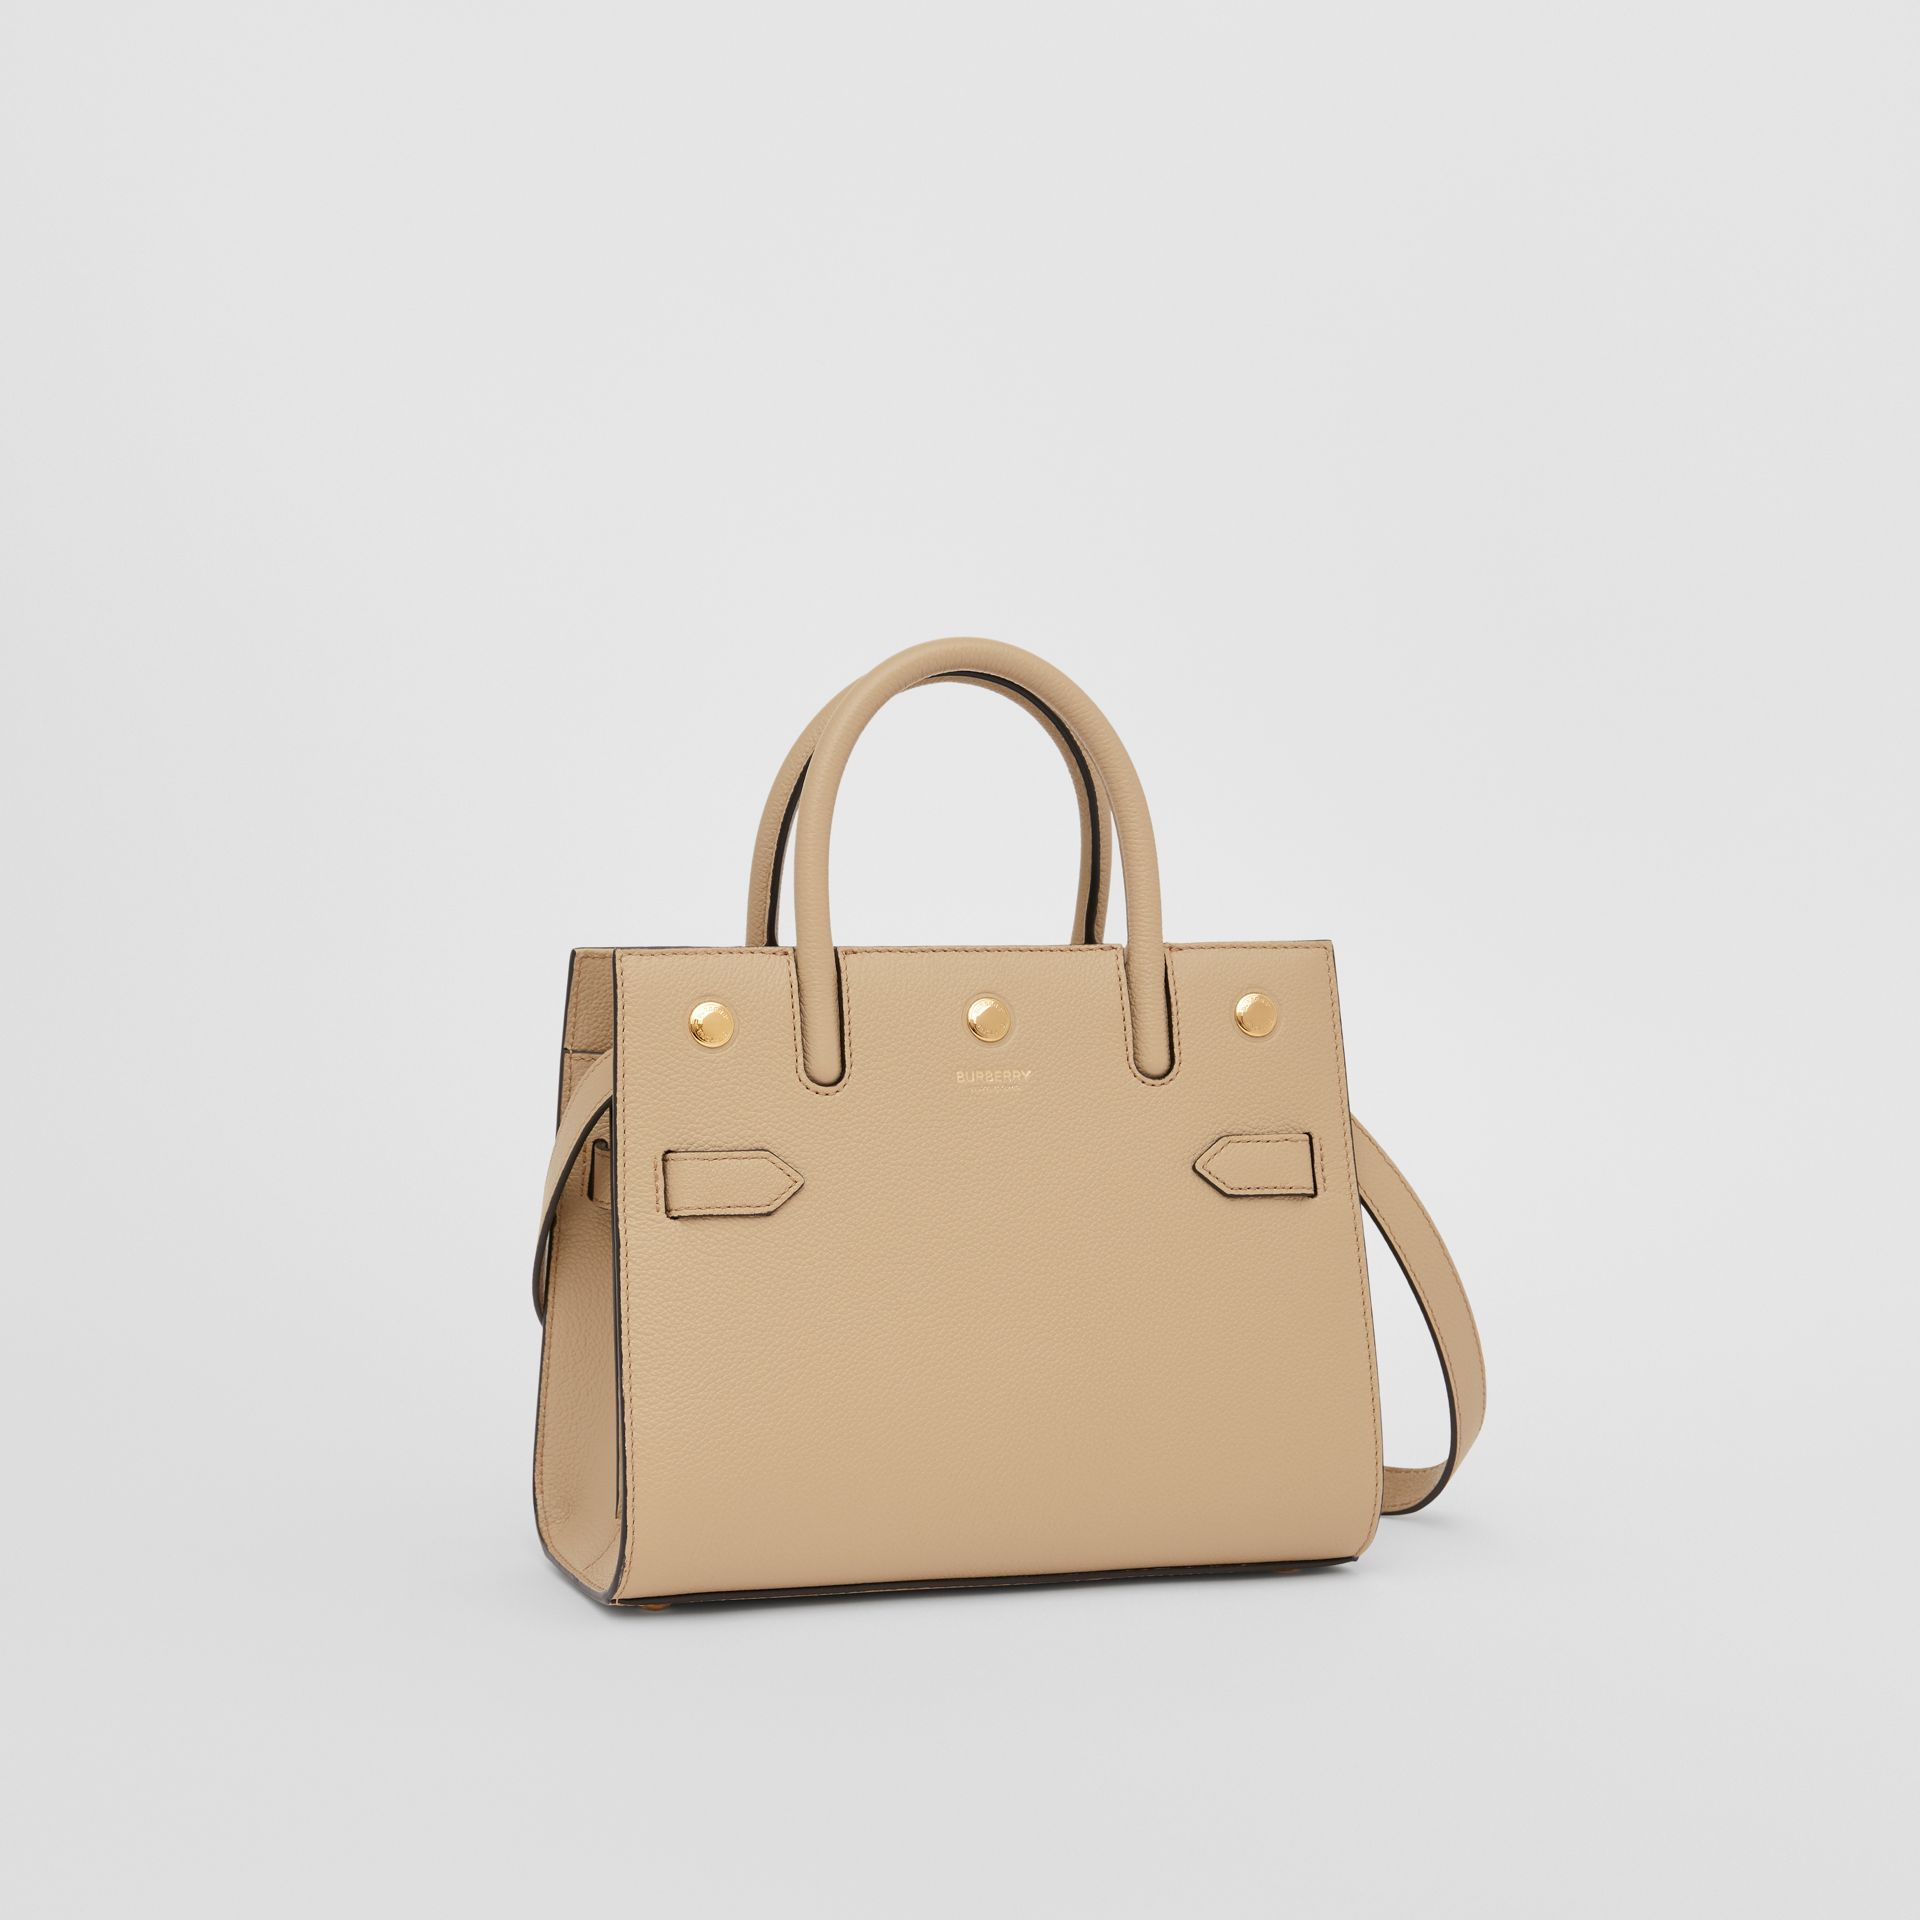 Mini Leather Two-handle Title Bag in Light Beige - Women | Burberry - gallery image 6